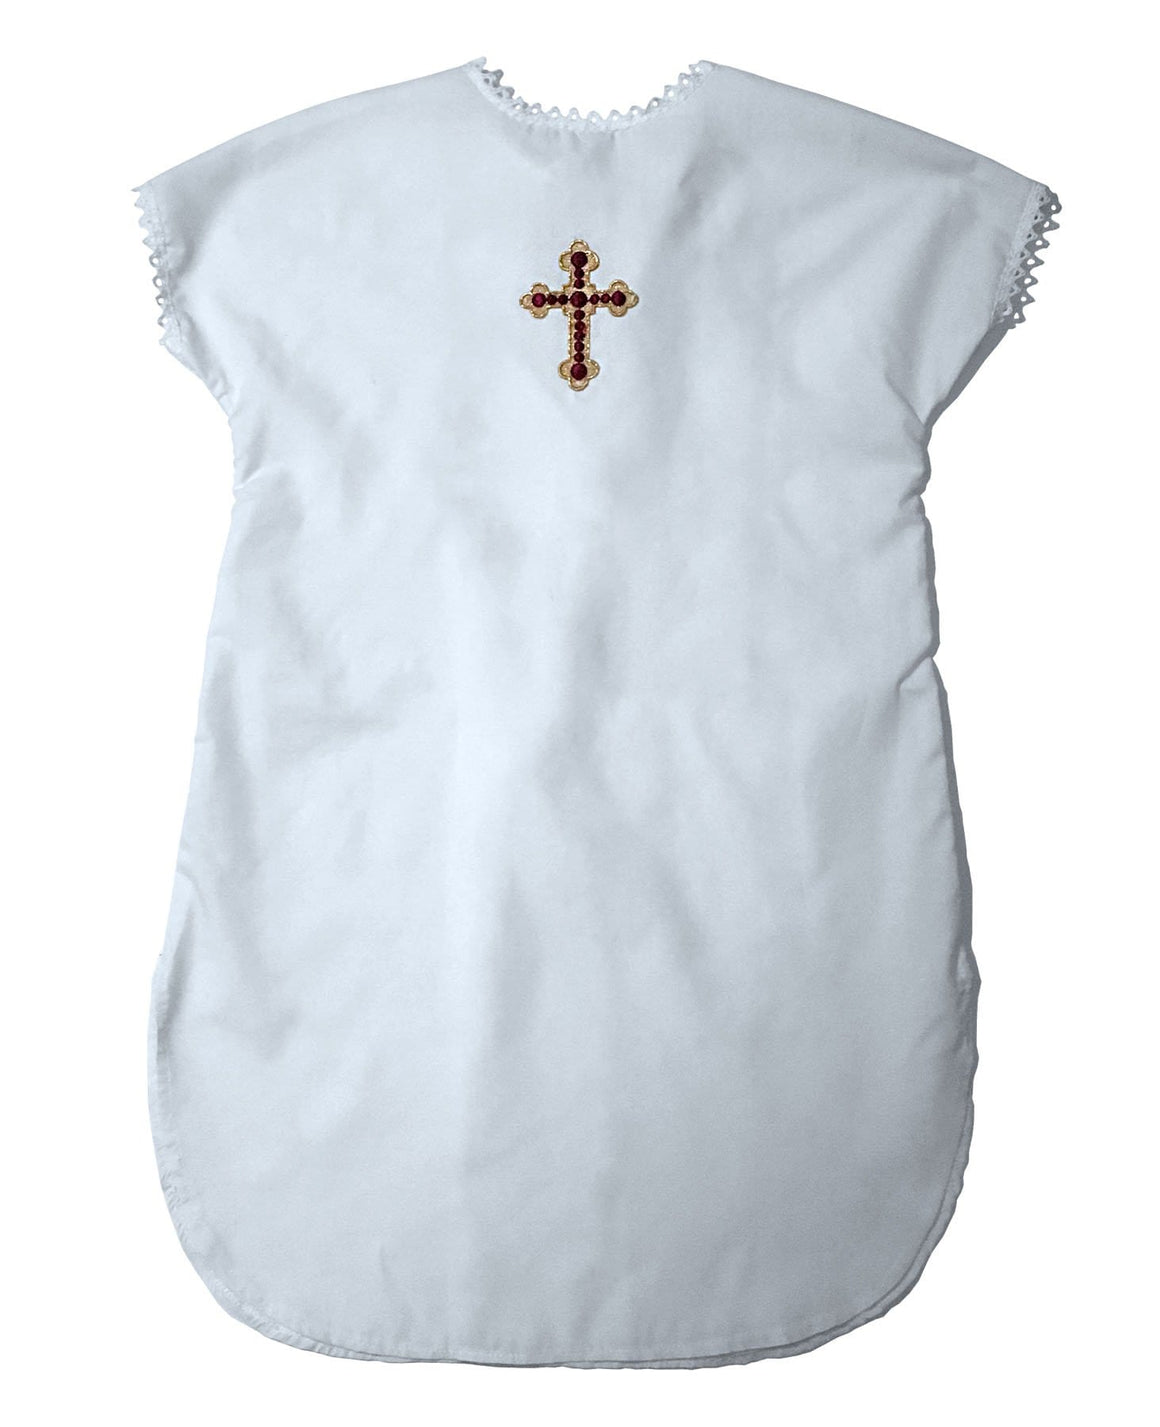 Child's Baptismal Gown (3-5 years)